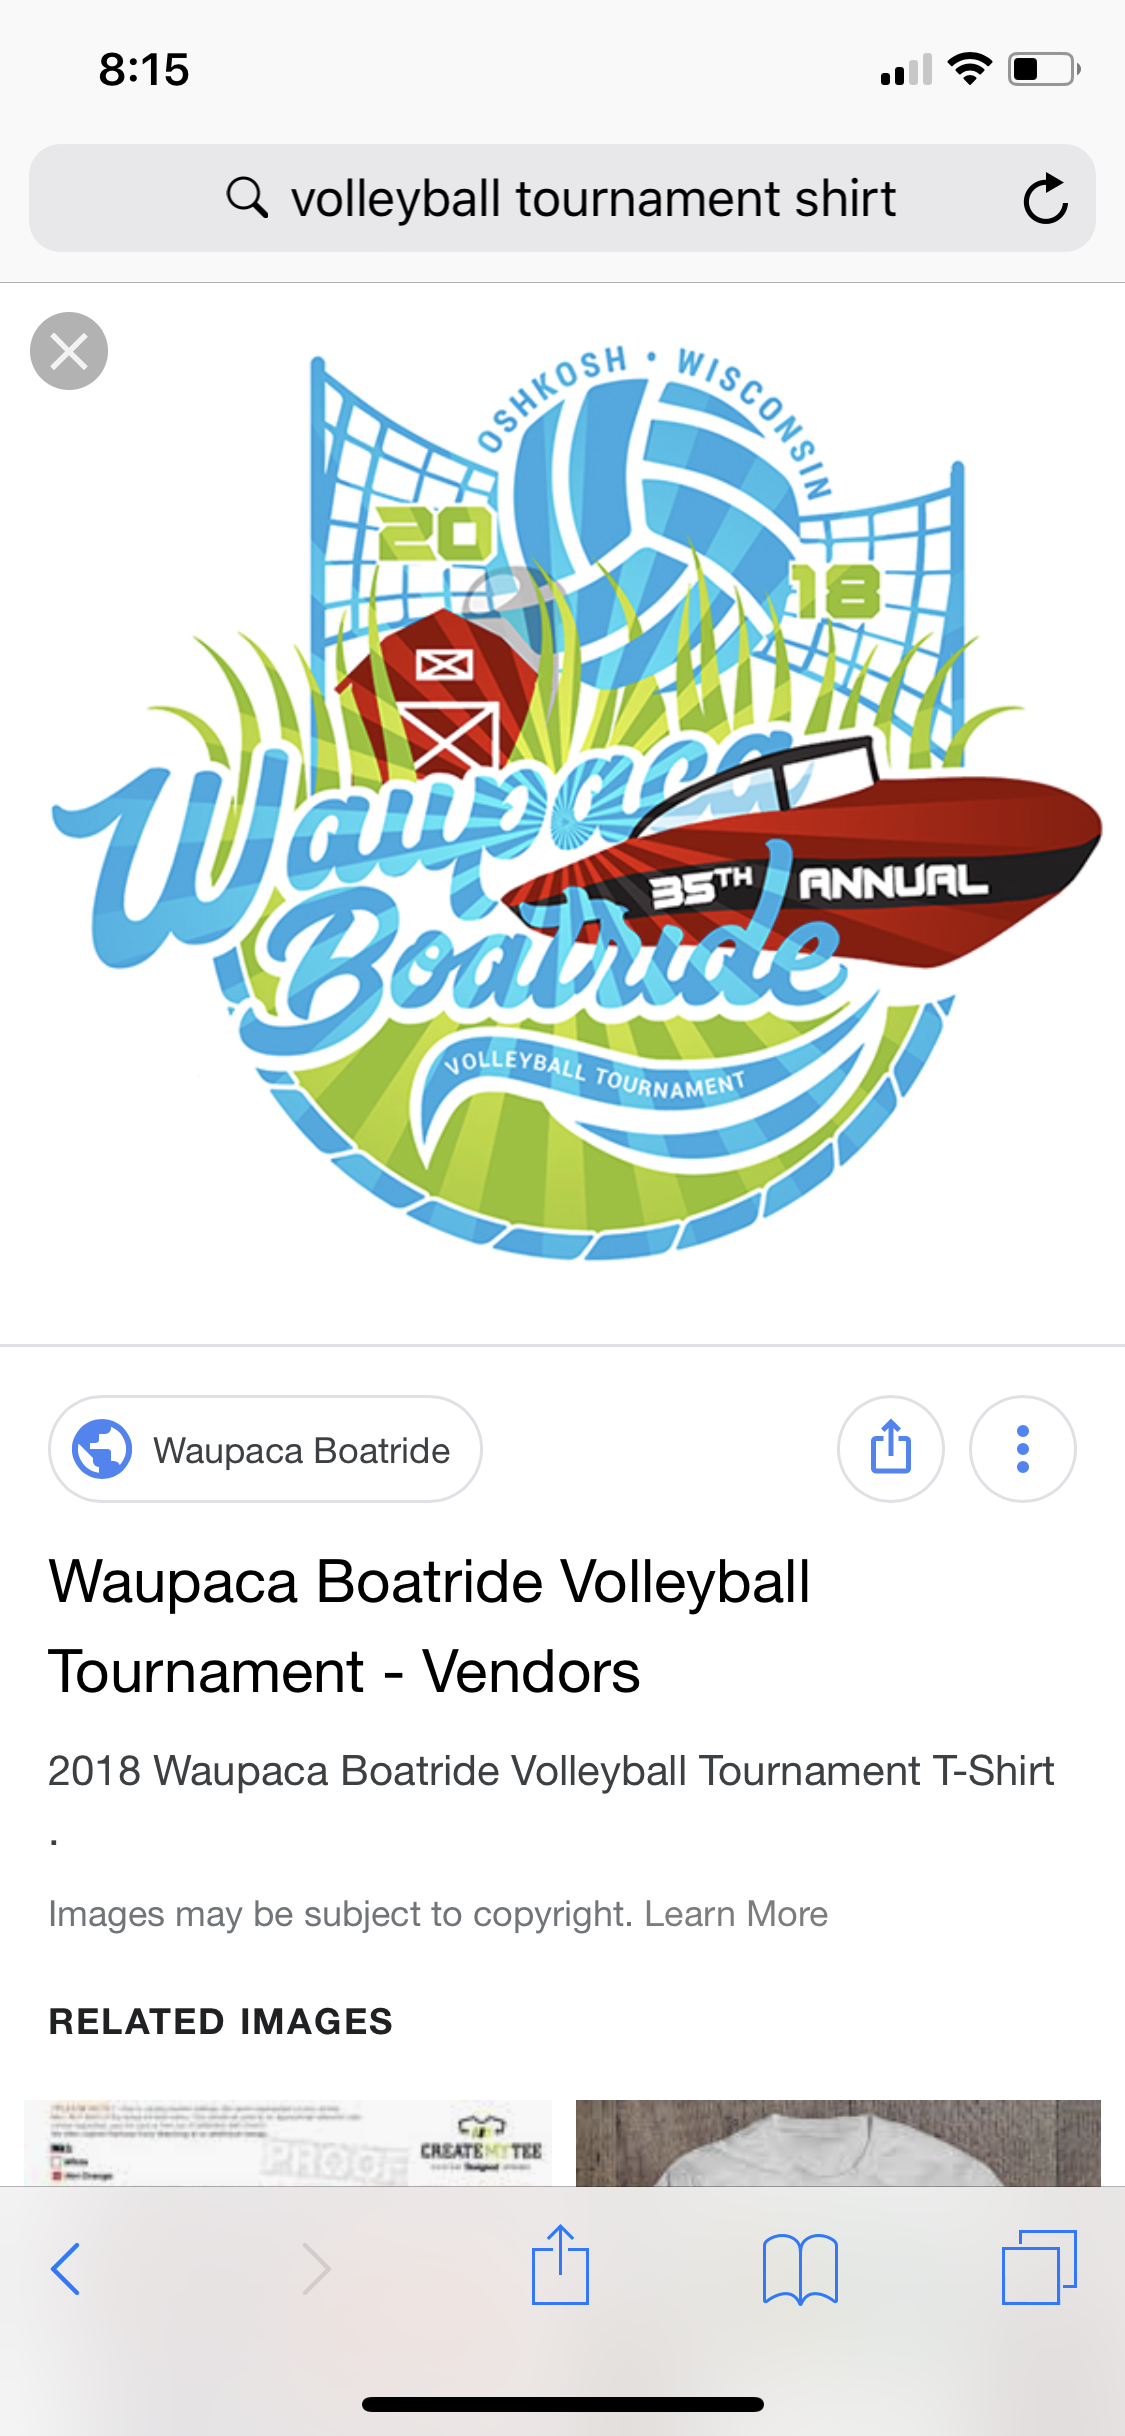 Pin By Stephanie Cantway On Tournament Logo T Shirt Image Volleyball Tournaments Waupaca